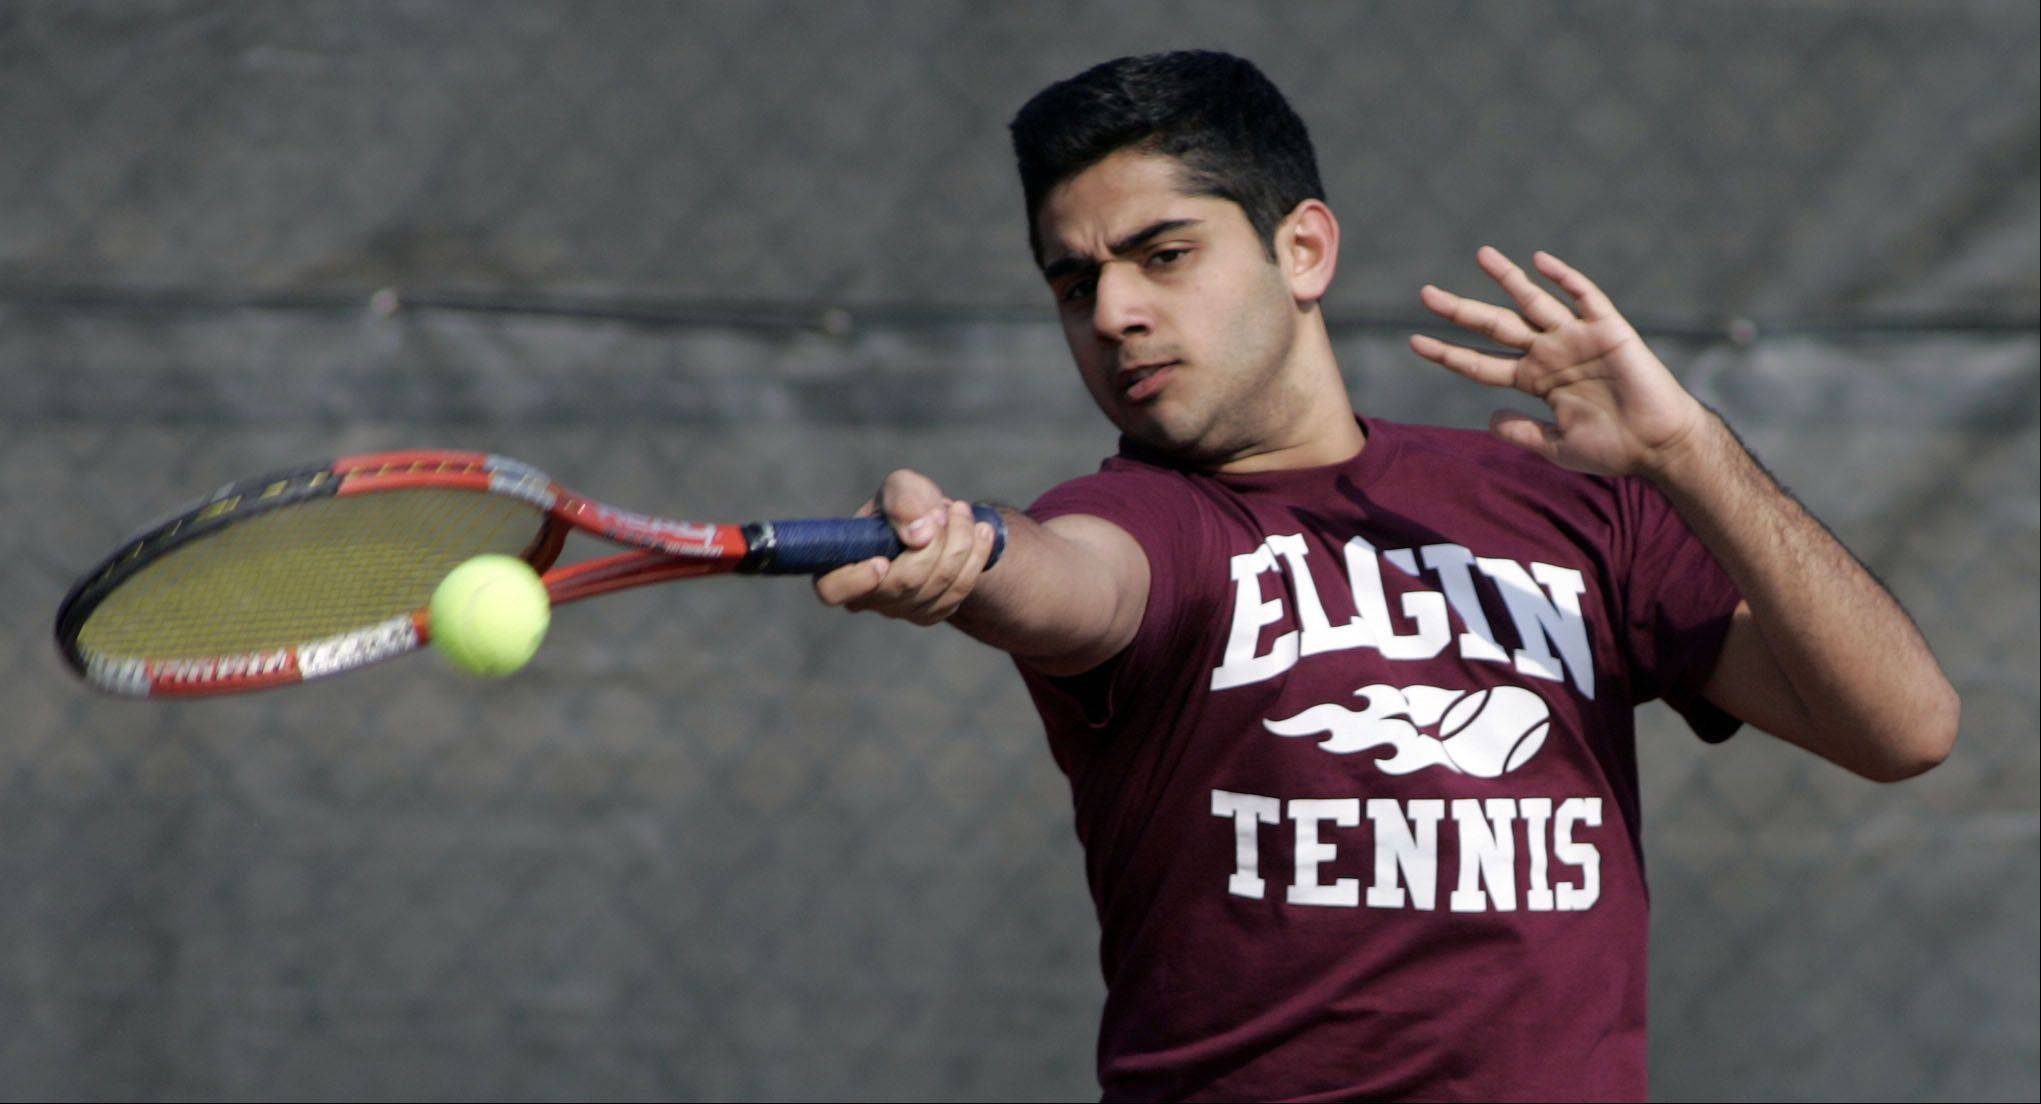 Elgin's Reza Khan, during the Cary-Grove boys tennis invite Saturday in Cary.